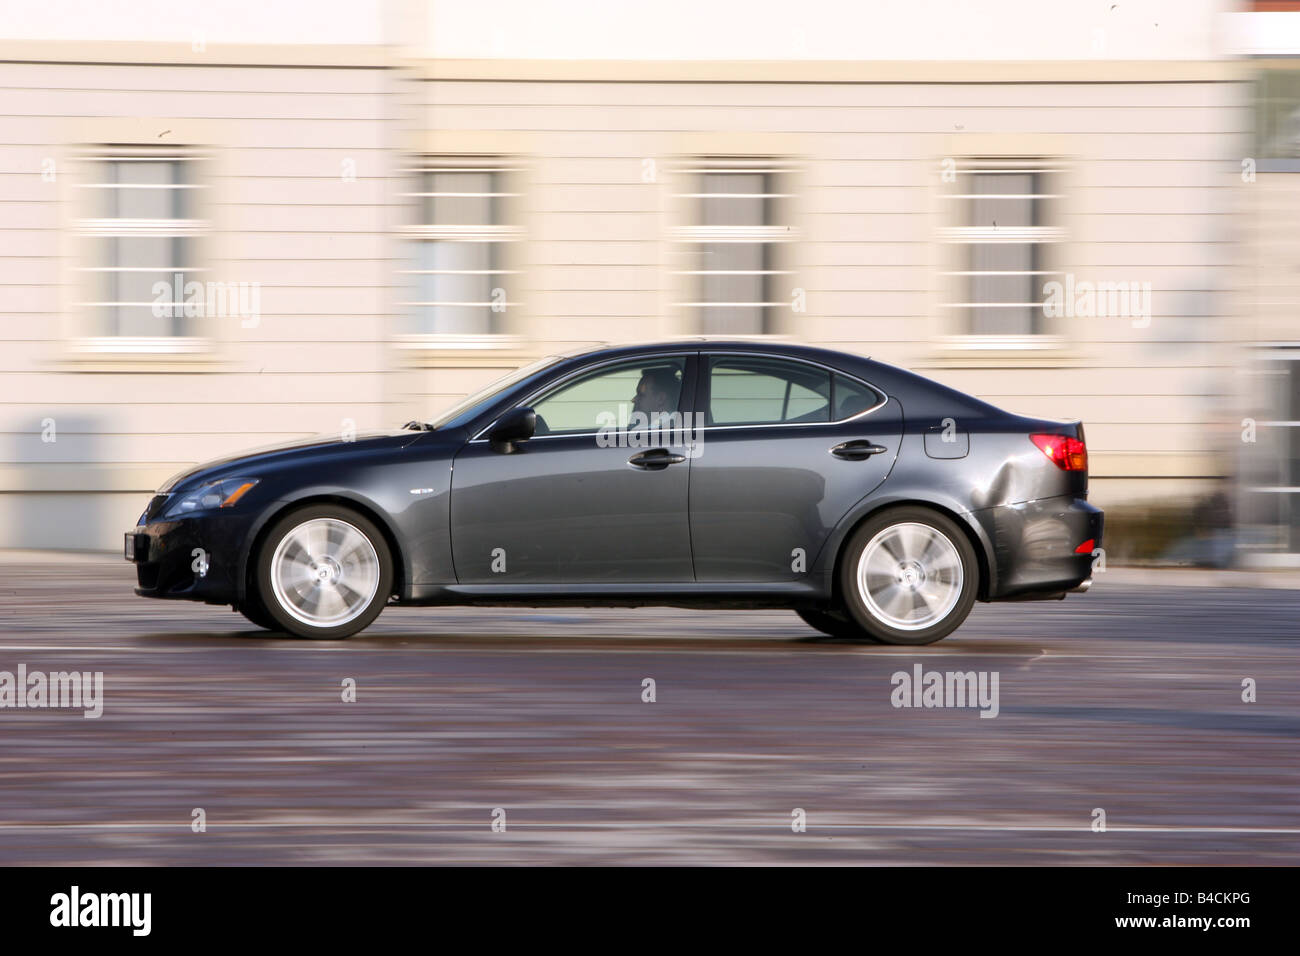 Lexus IS 250, model year 2005-, black, driving, side view, City - Stock Image